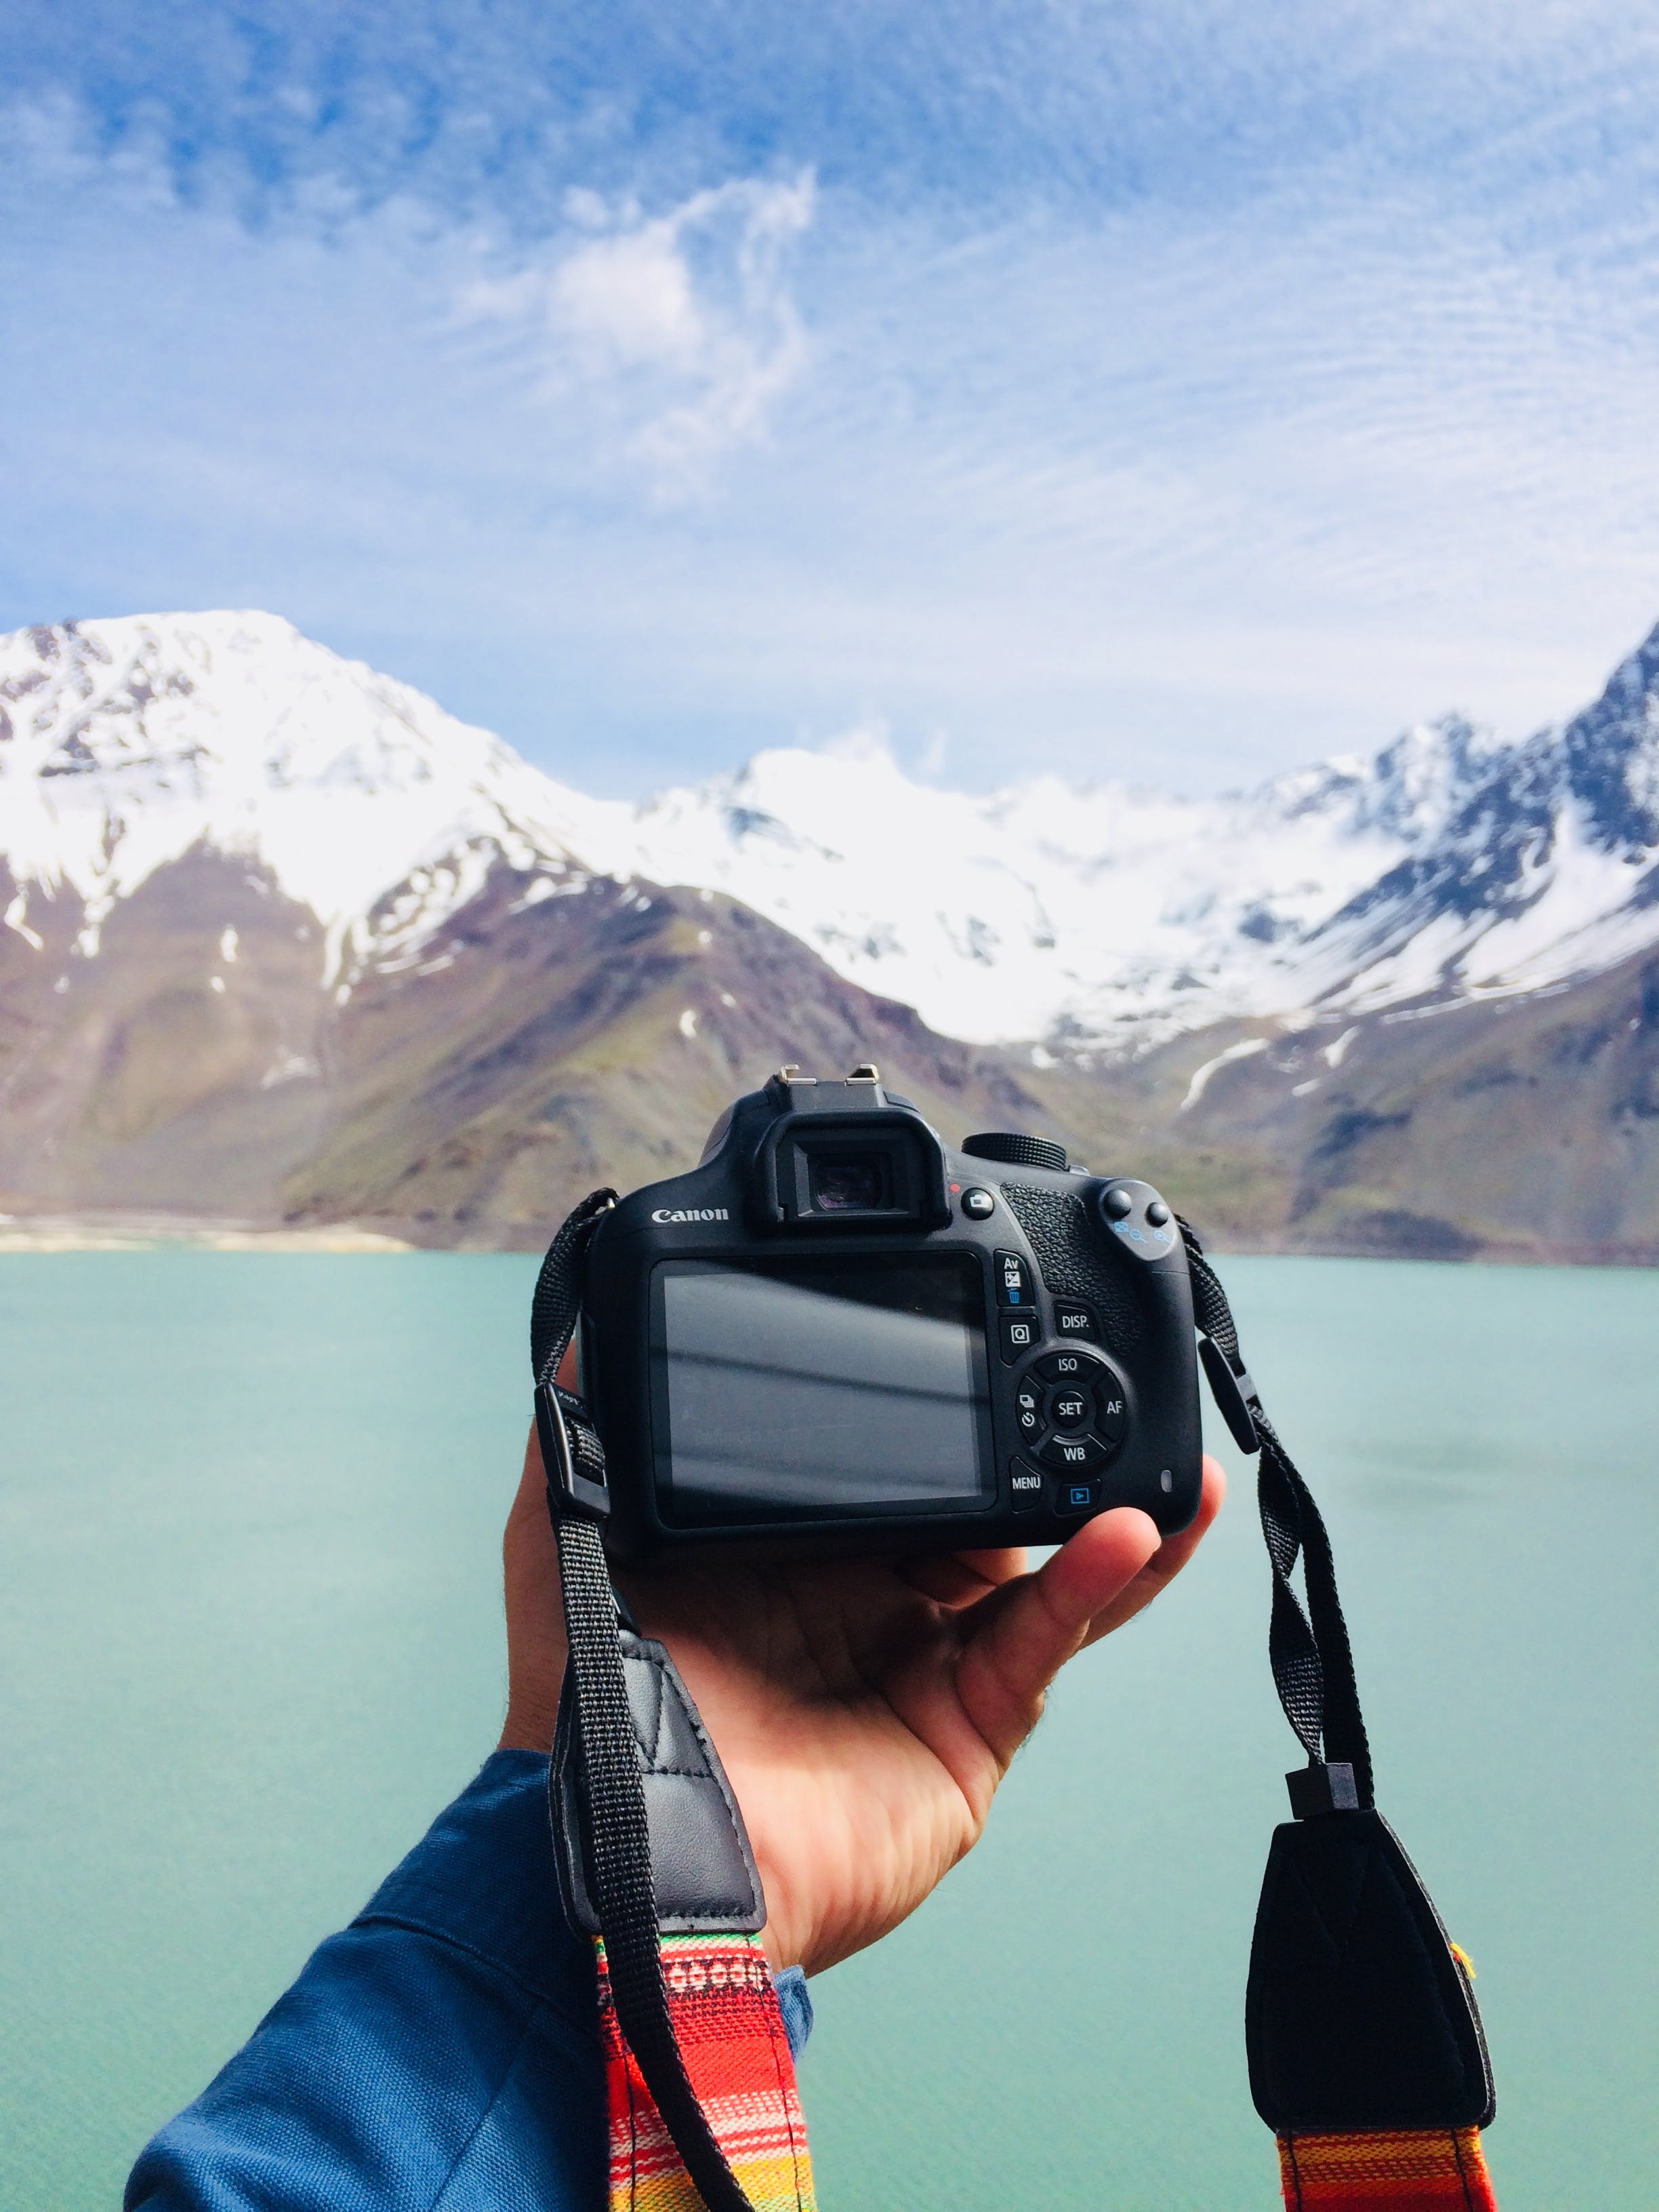 Person Holding Black Canon Dslr Camera in Front Body of Water